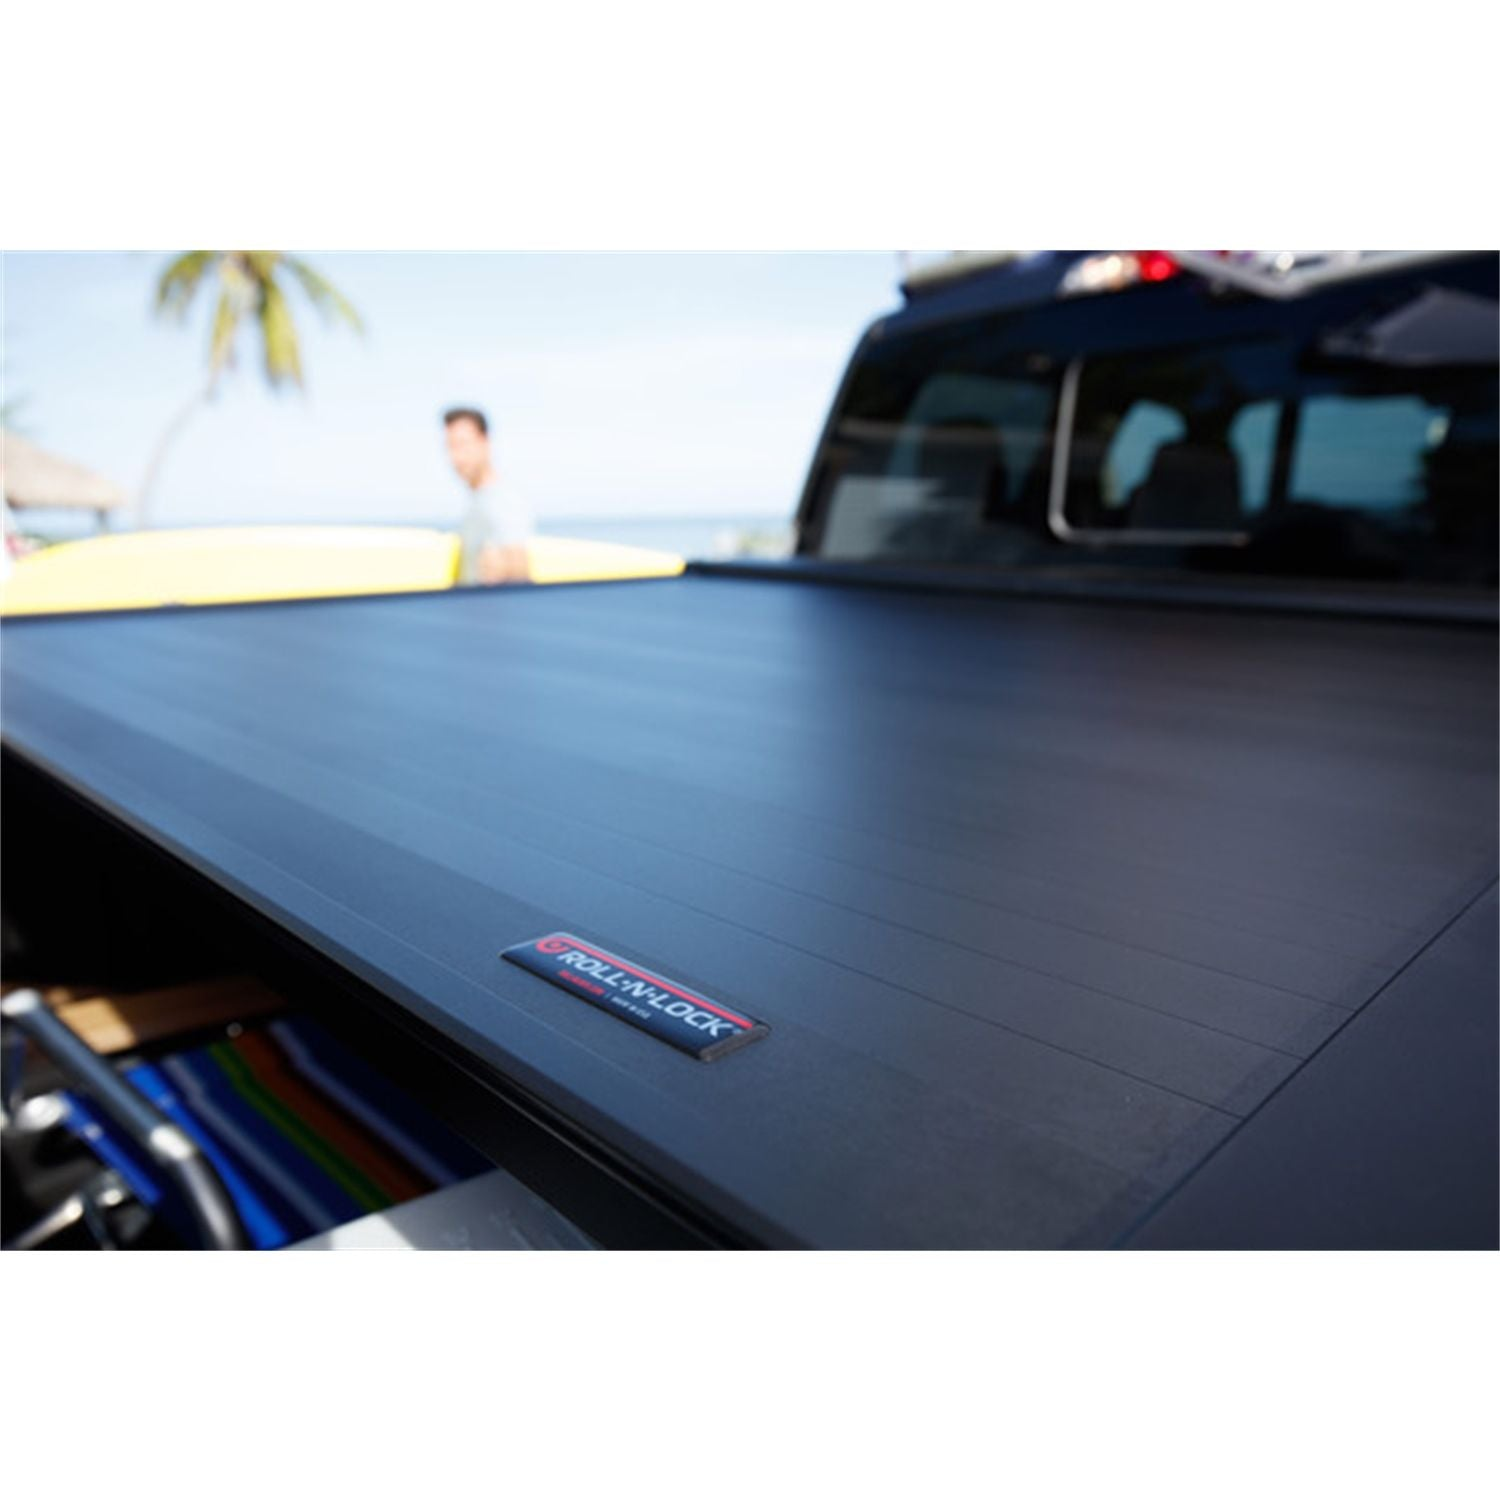 Roll-N-Lock RC223E Locking Retractable E-Series Truck Bed Tonneau Cover for 2019-2020 Chevrolet Silverado 1500 & GMC Sierra 1500 | Fits 5.8 Ft. Bed